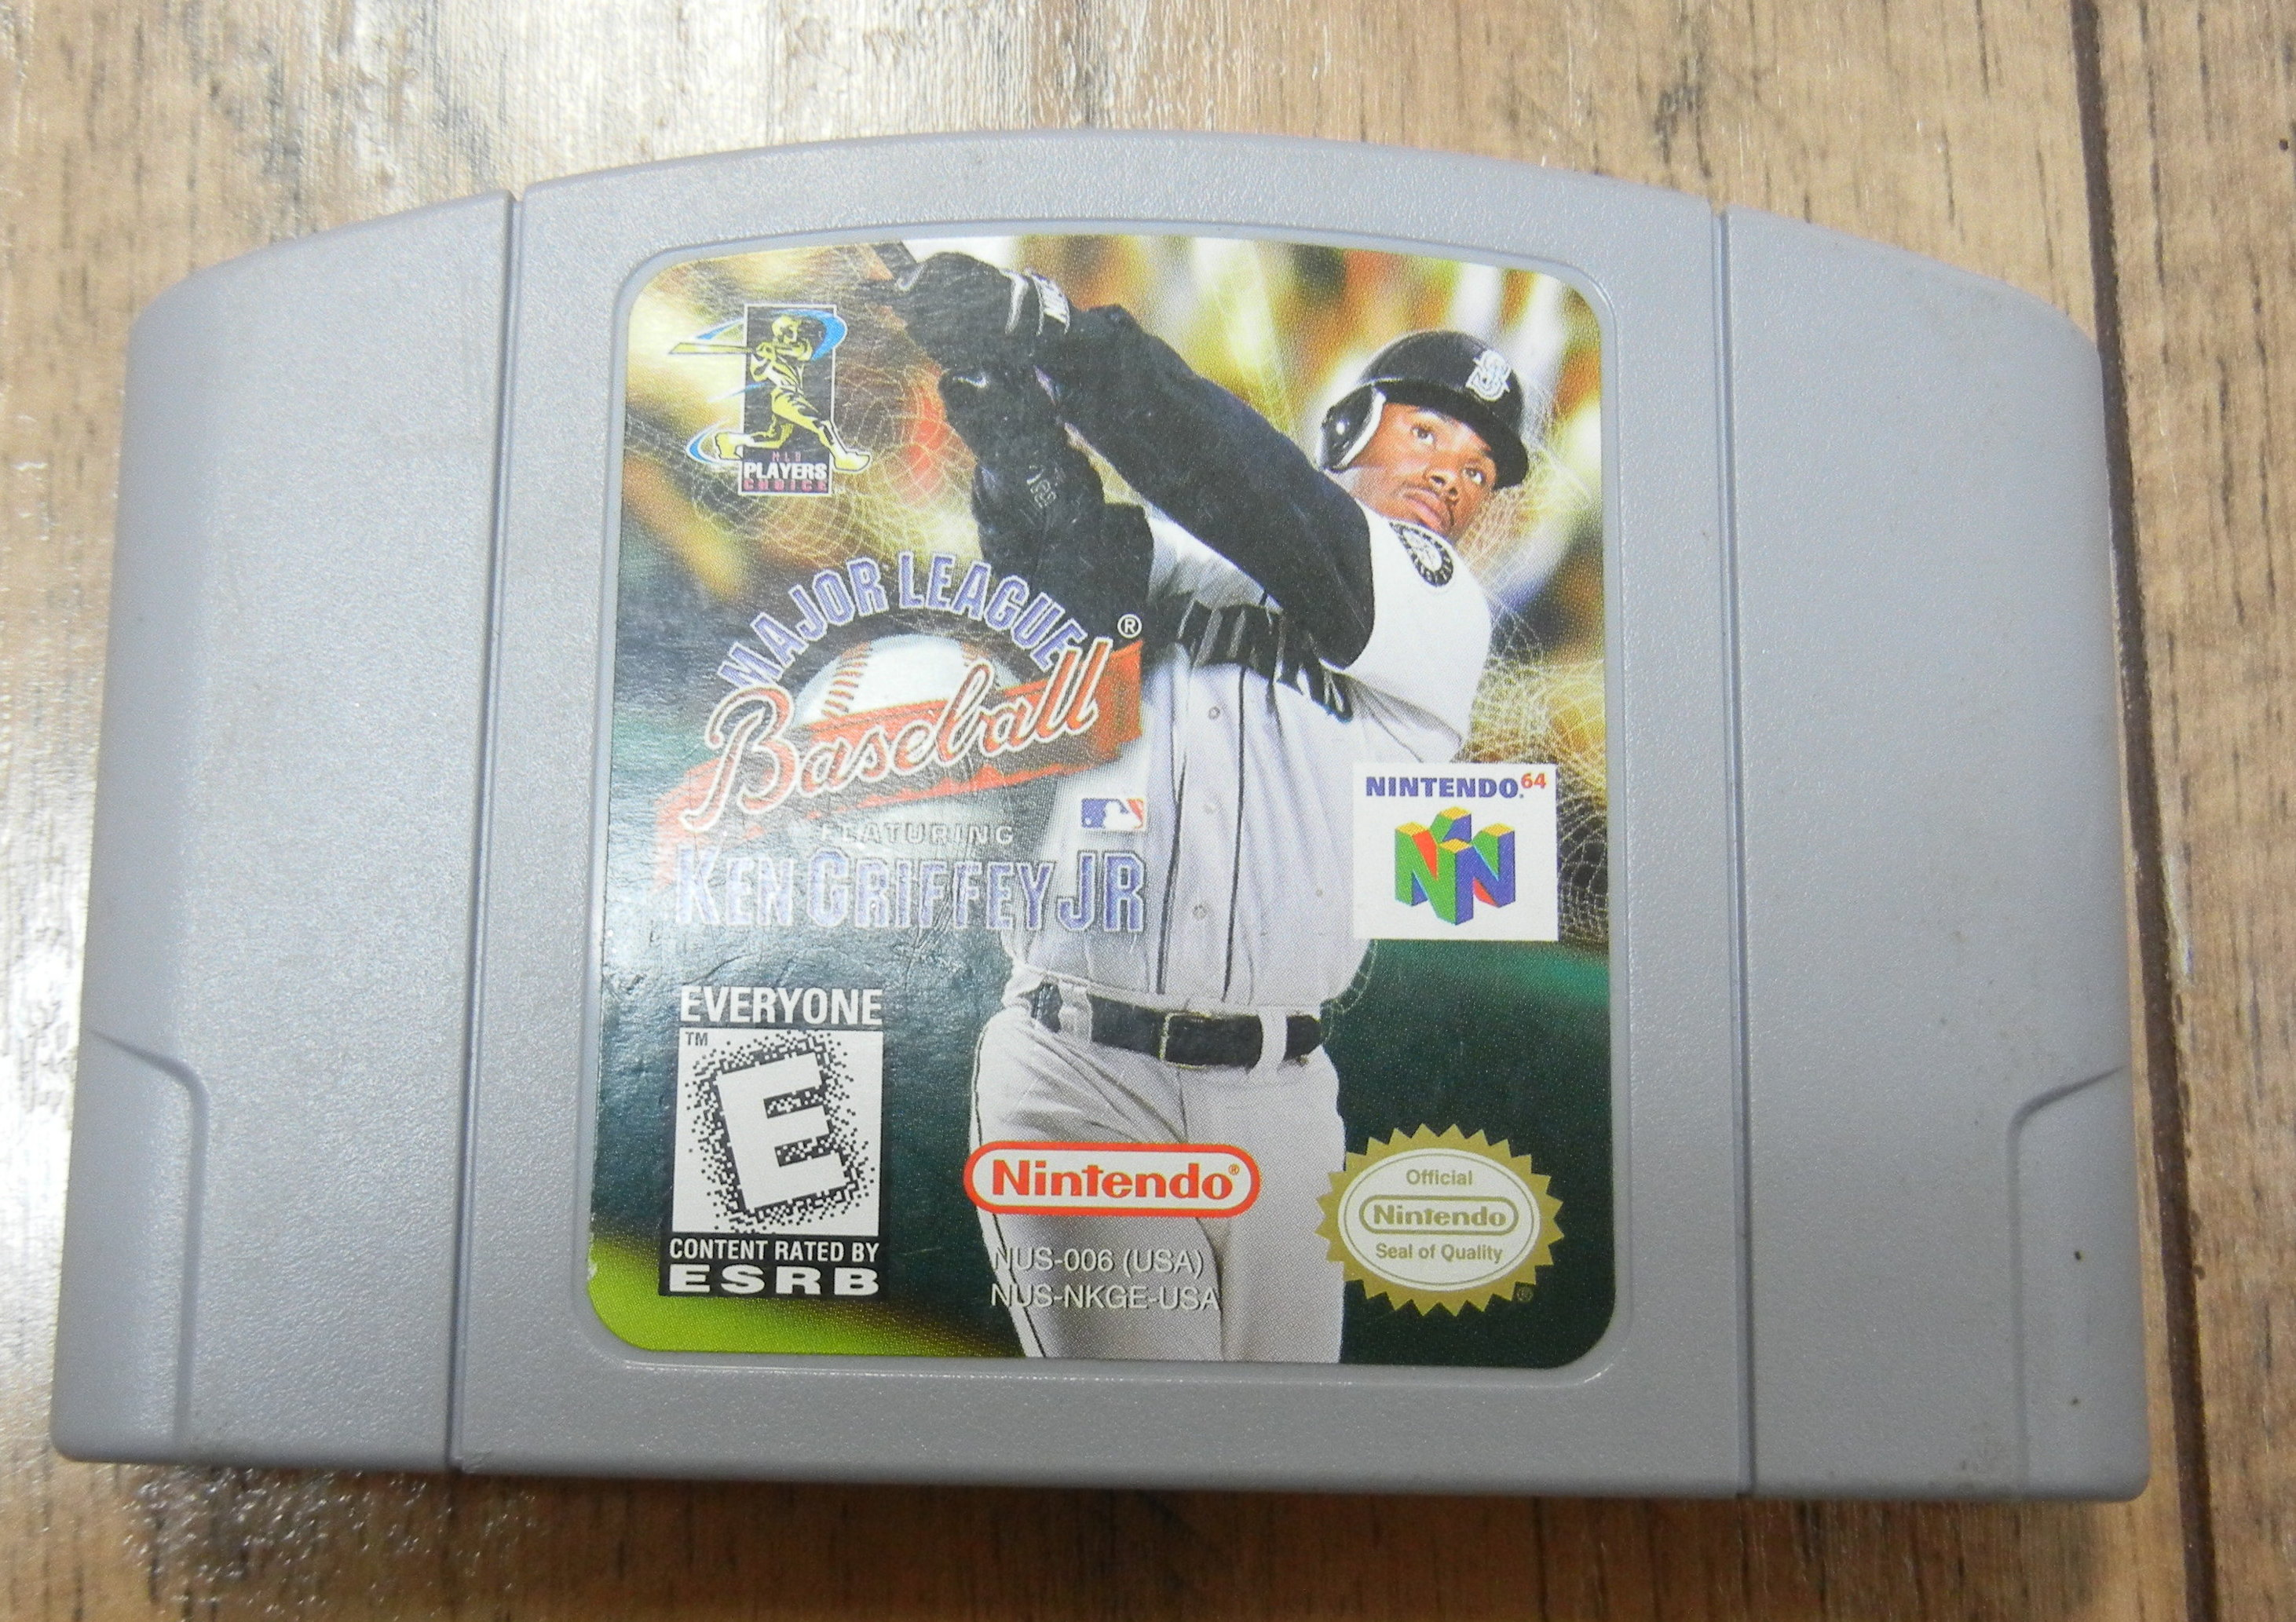 MAJOR LEAGUE BASEBALL FEAT. KEN GRIFFEY JR N64 GAME